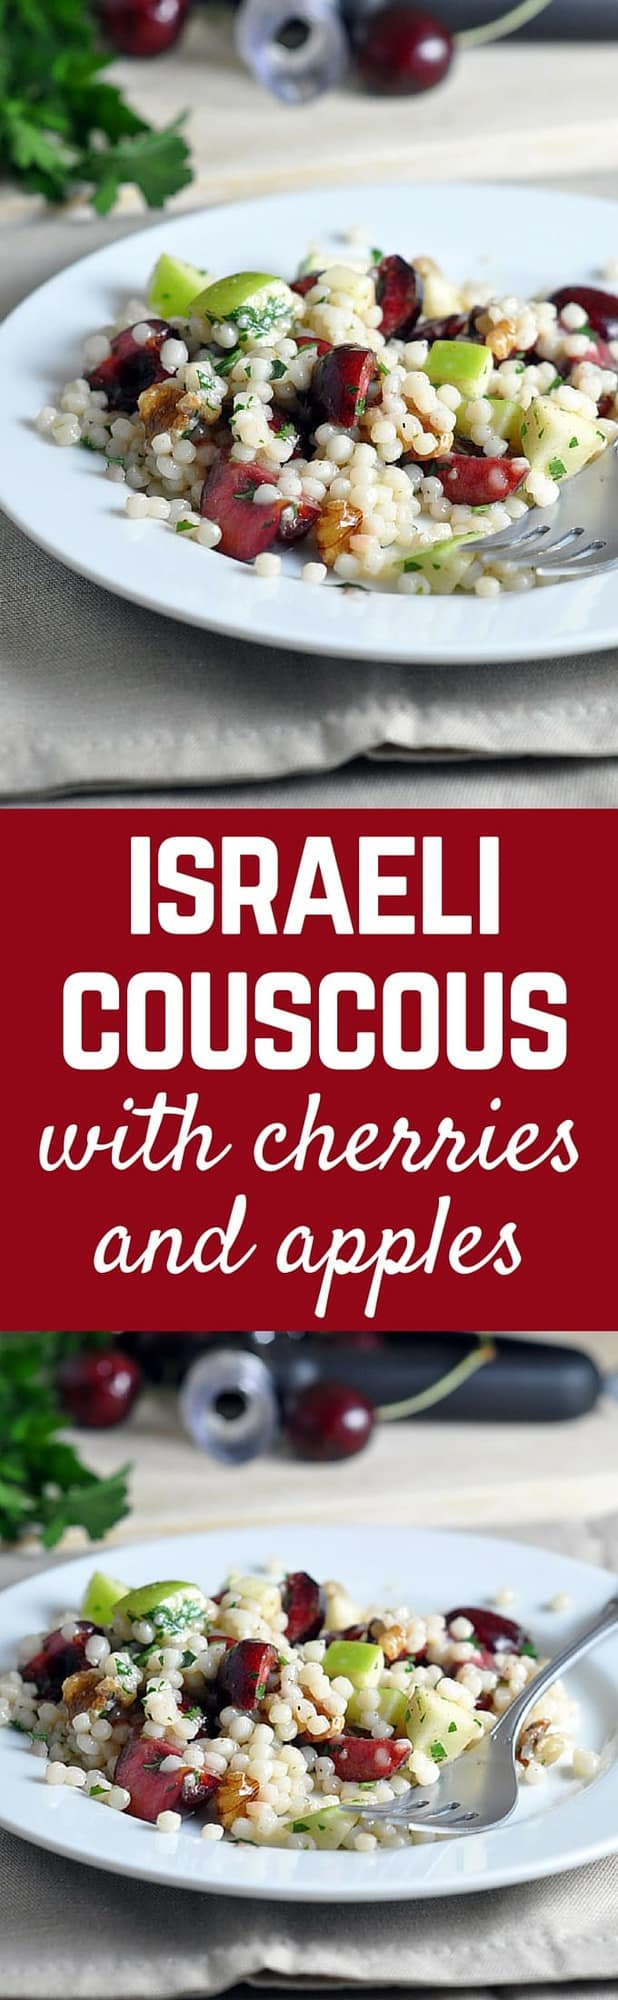 You'll love this Israeli couscous recipe with cherries and apples -- a perfect blend of summer and fall! Get the easy recipe on RachelCooks.com!